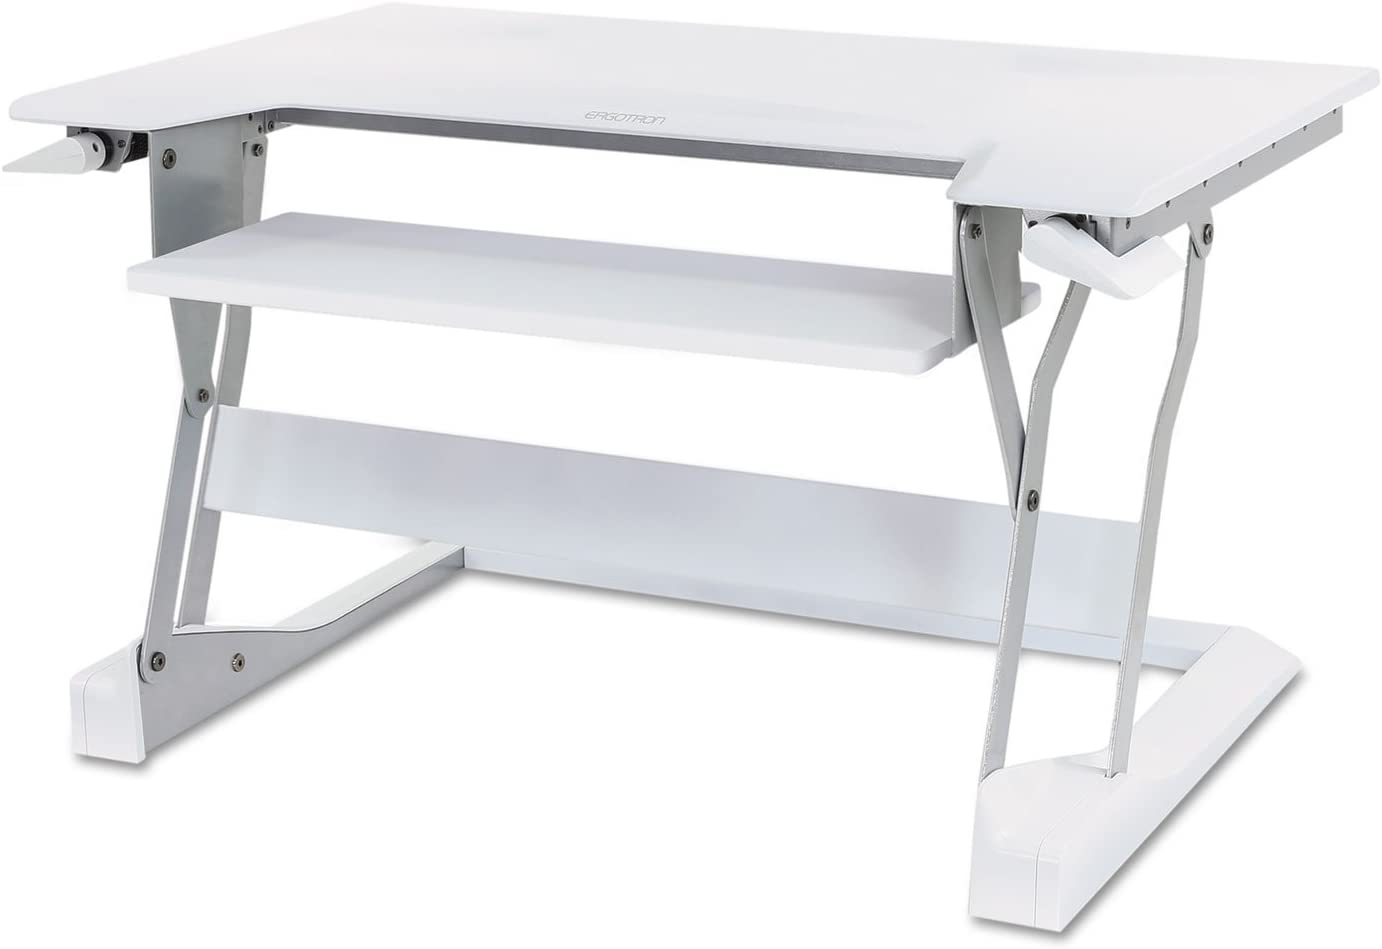 Ergotron 33397062 WorkFit-T Desktop Sit-Stand Workstation 35 x 22 x 20 White